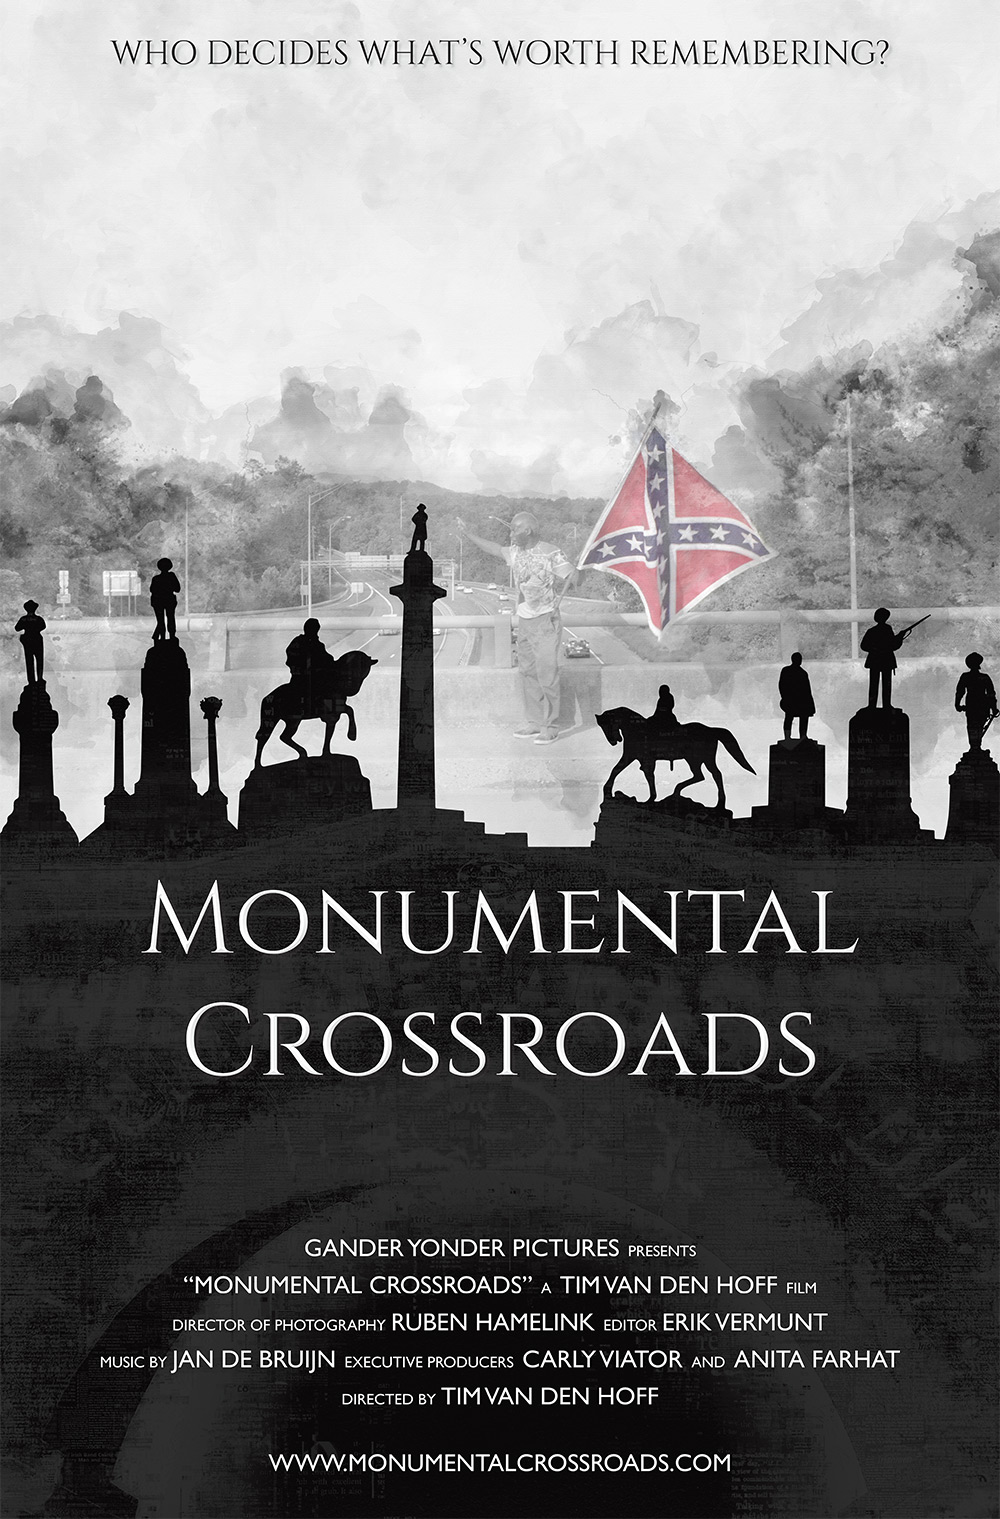 Monumental Crossroads